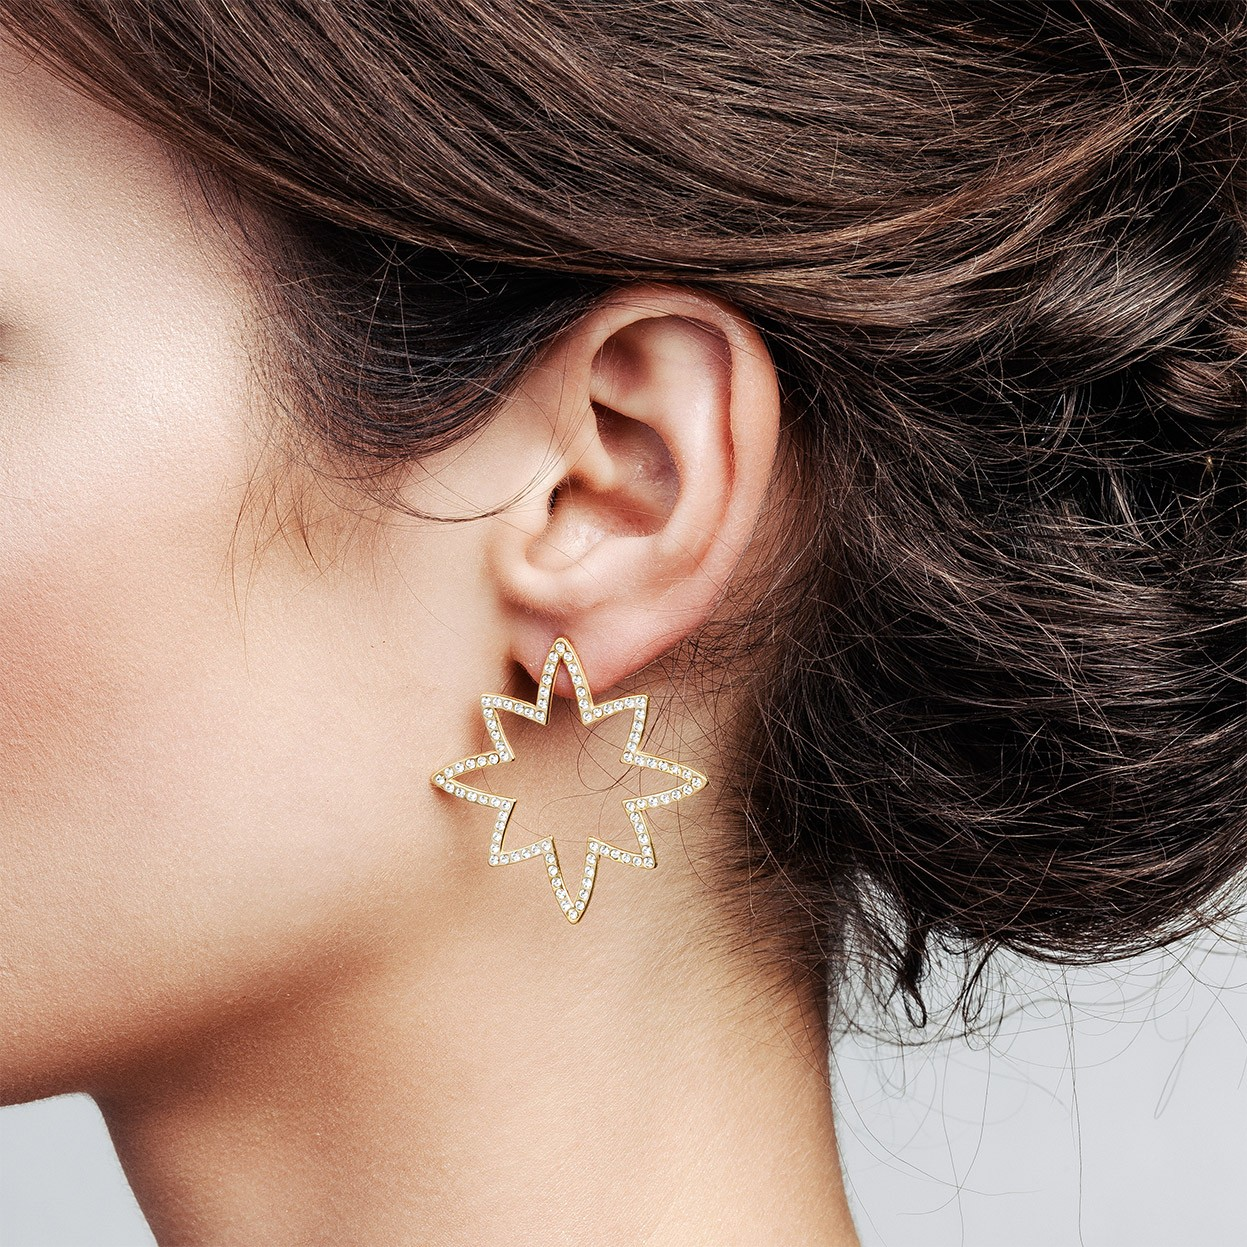 Silver star earrings with swarovski crystals